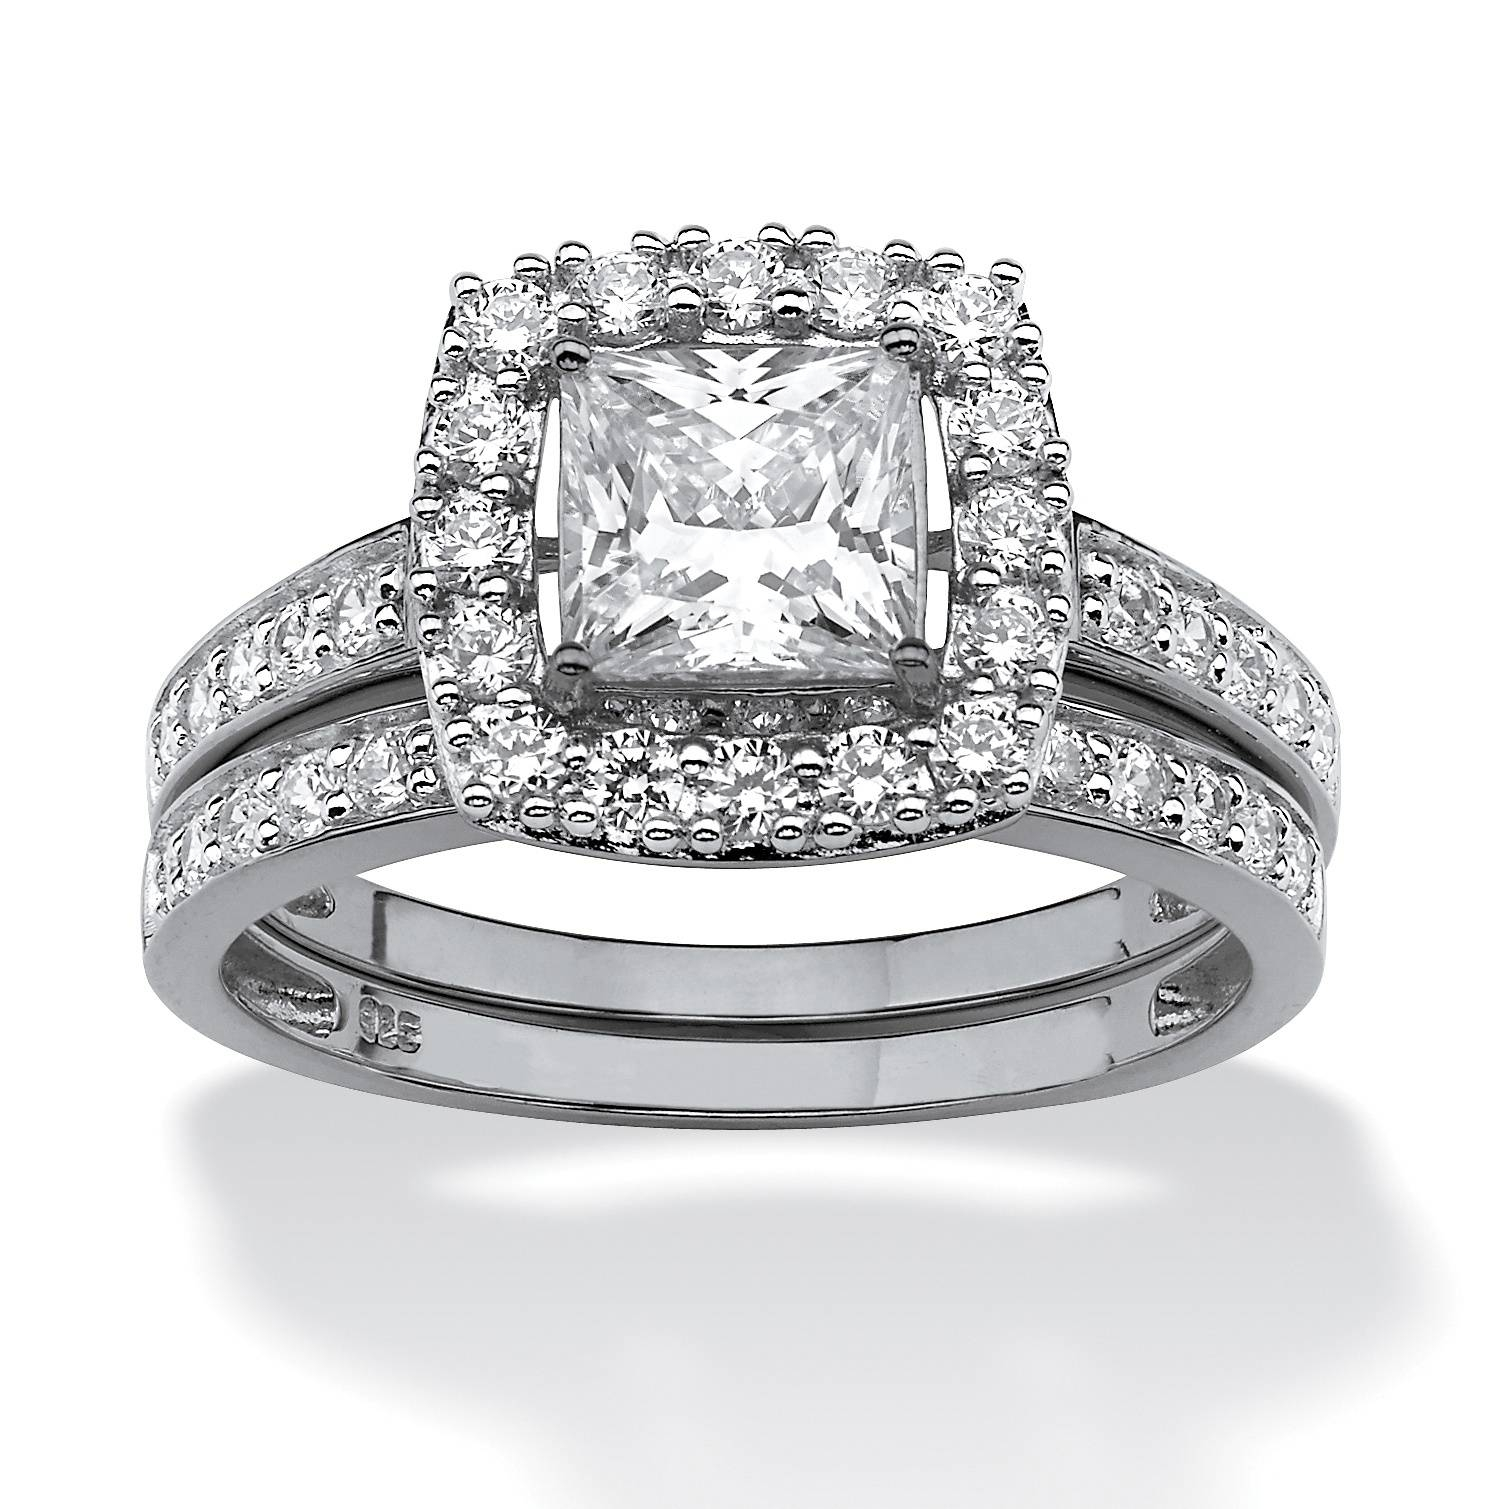 Cz 18Kt White Gold Bridal Engagement Ring – Walmart In White Gold Zirconia Wedding Rings (View 10 of 15)